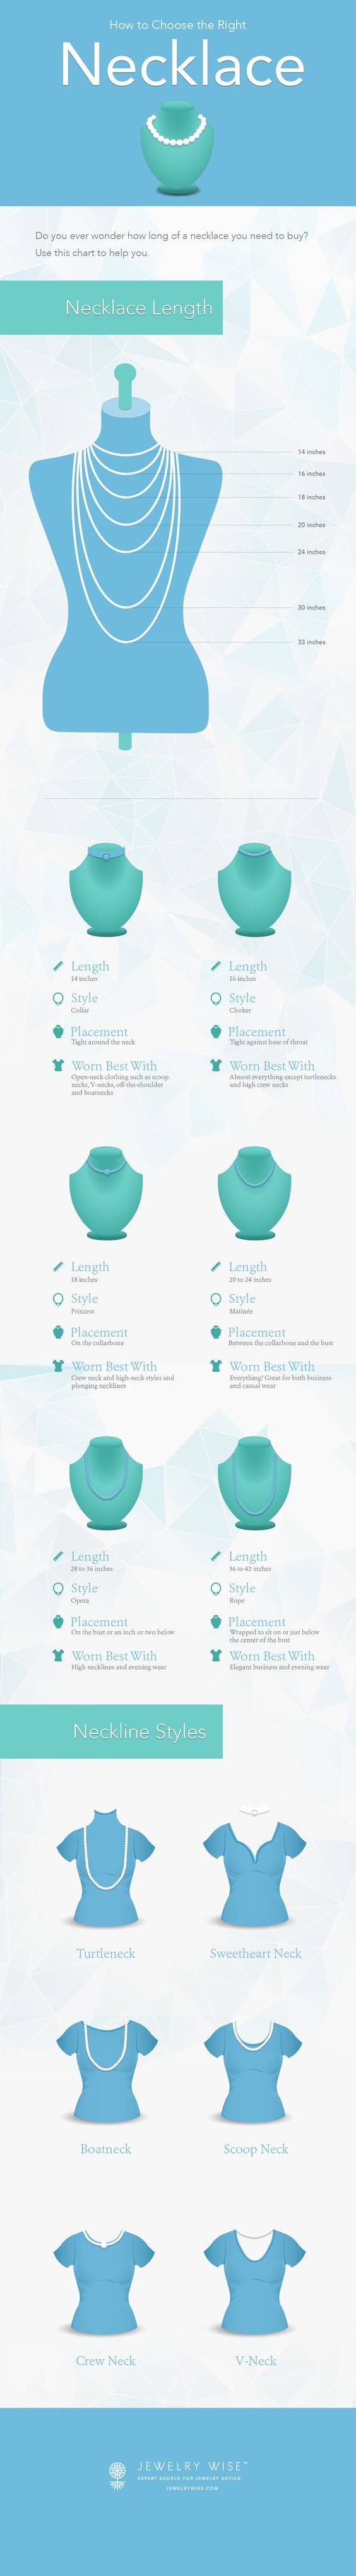 Use this infographic to help you decide the best necklace length for you as well as what to wear it with